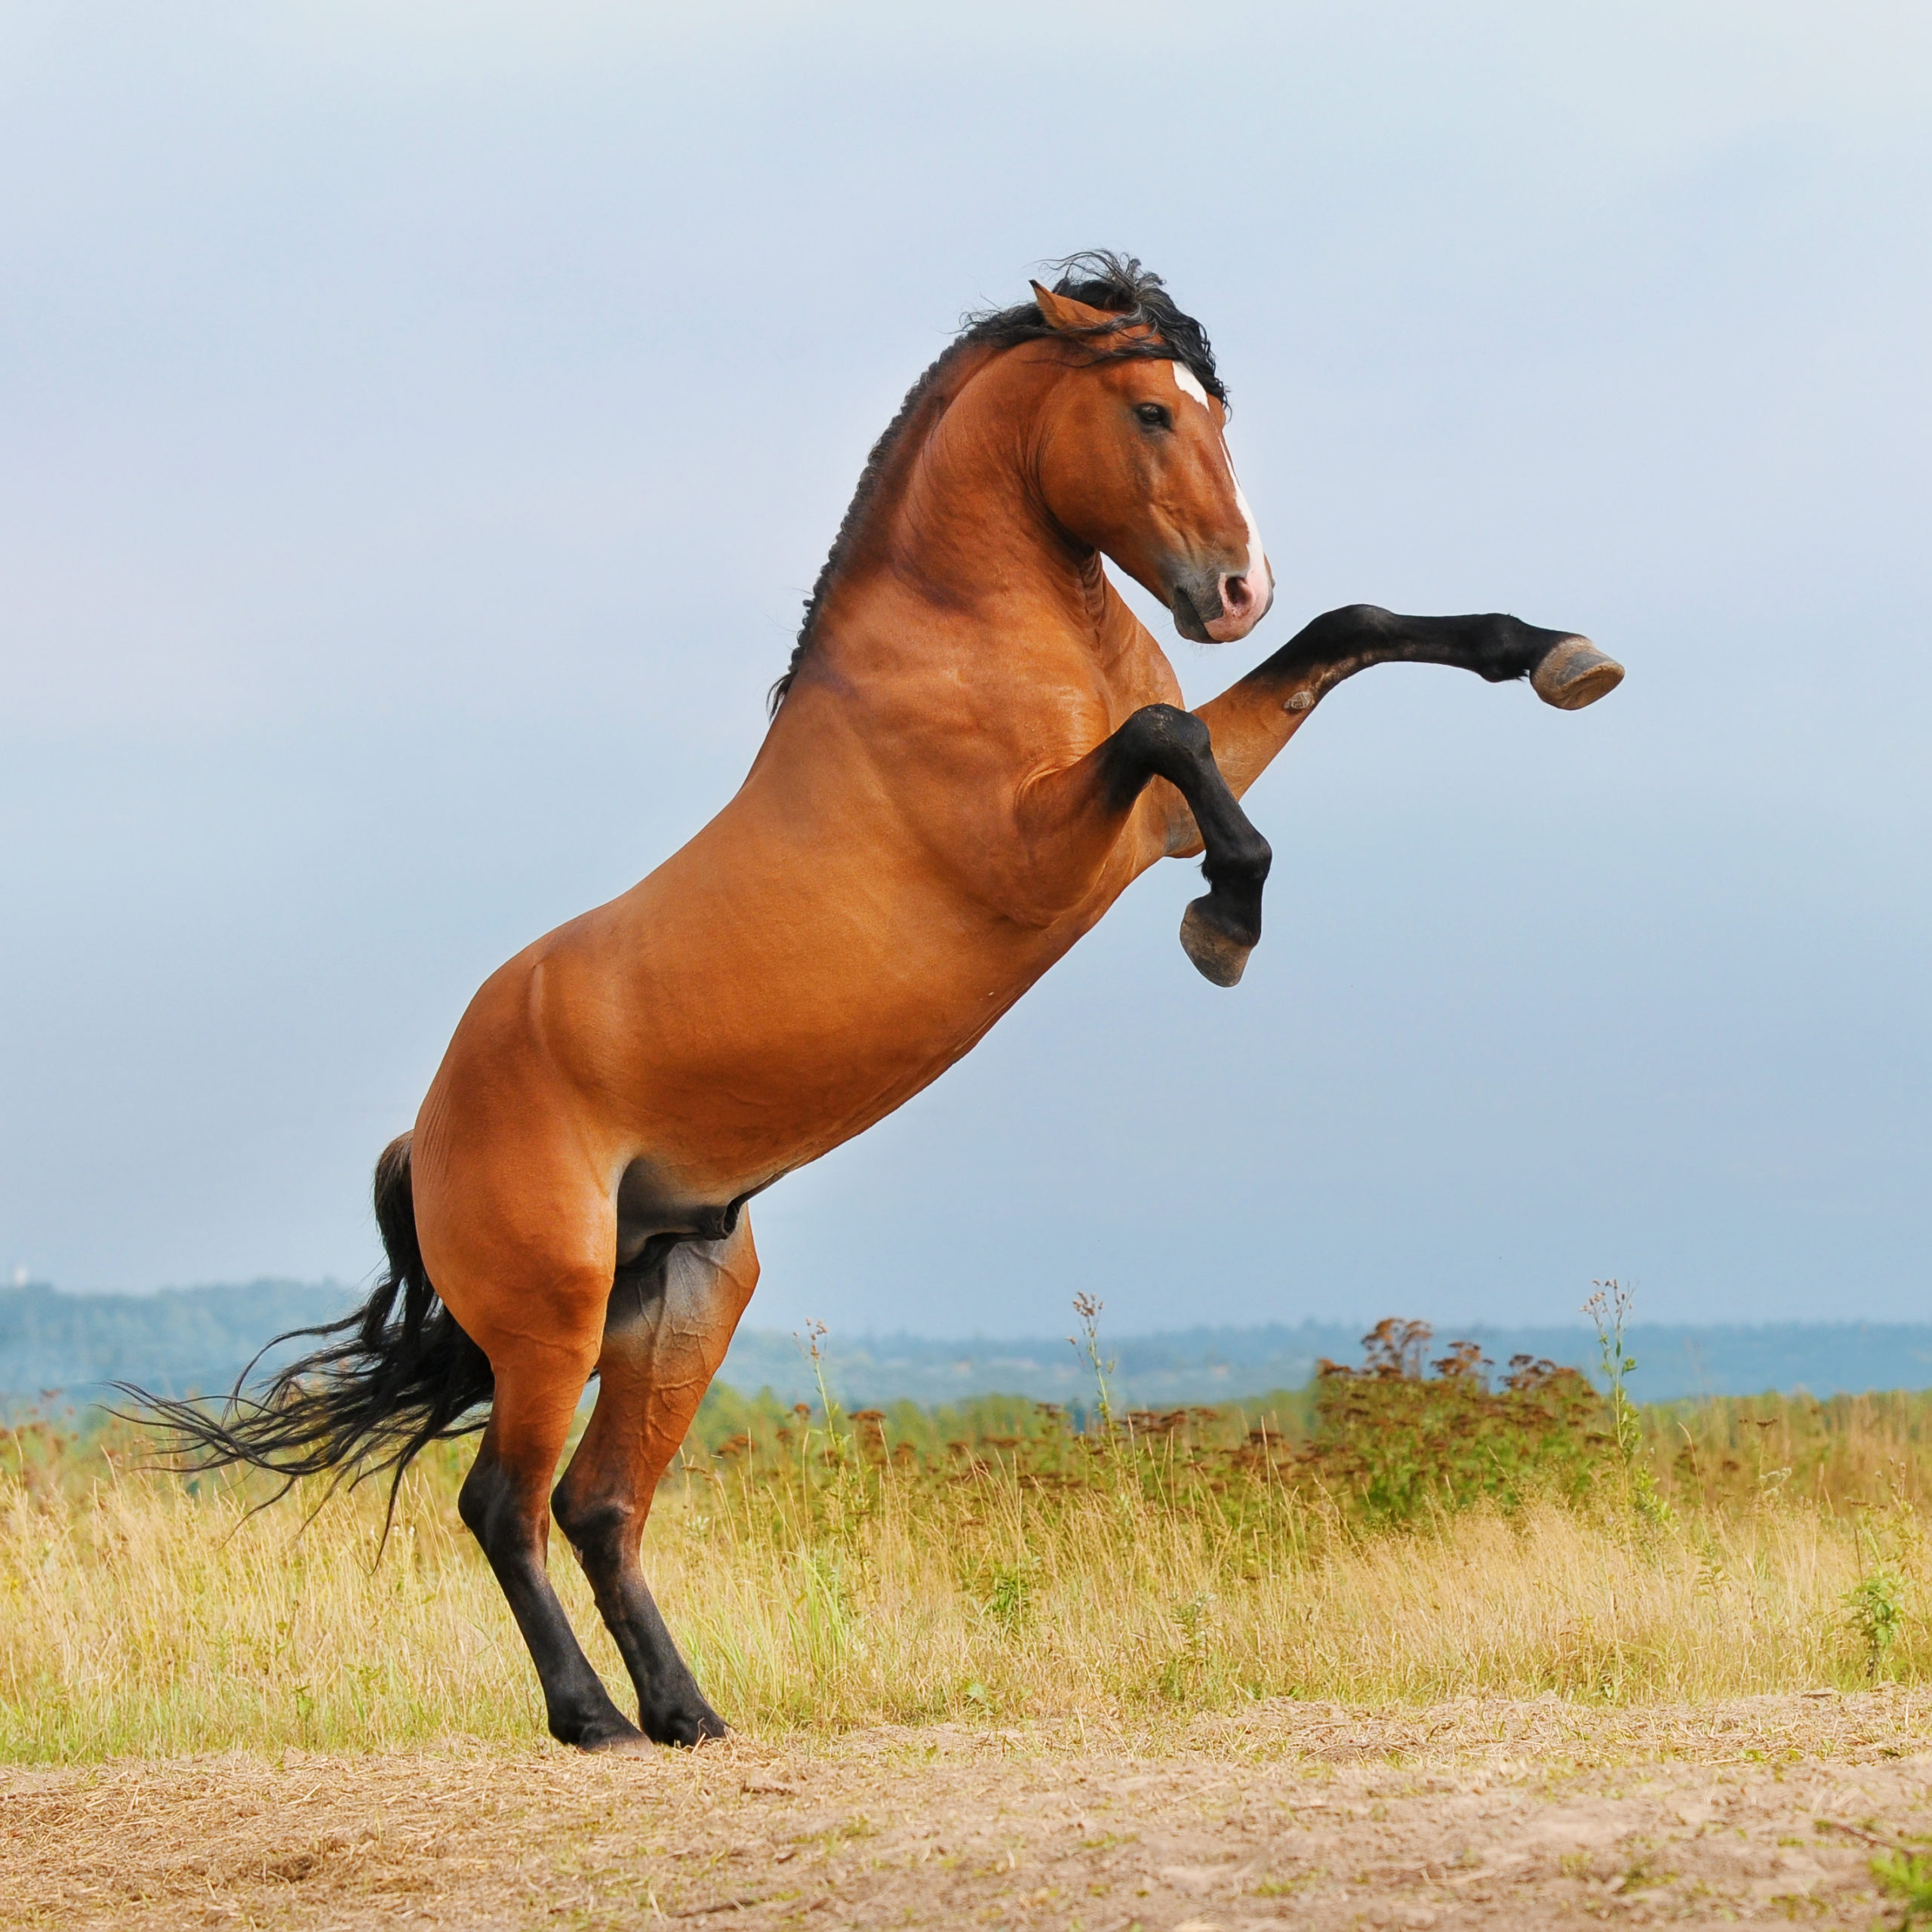 AskHQ: The rearing horse